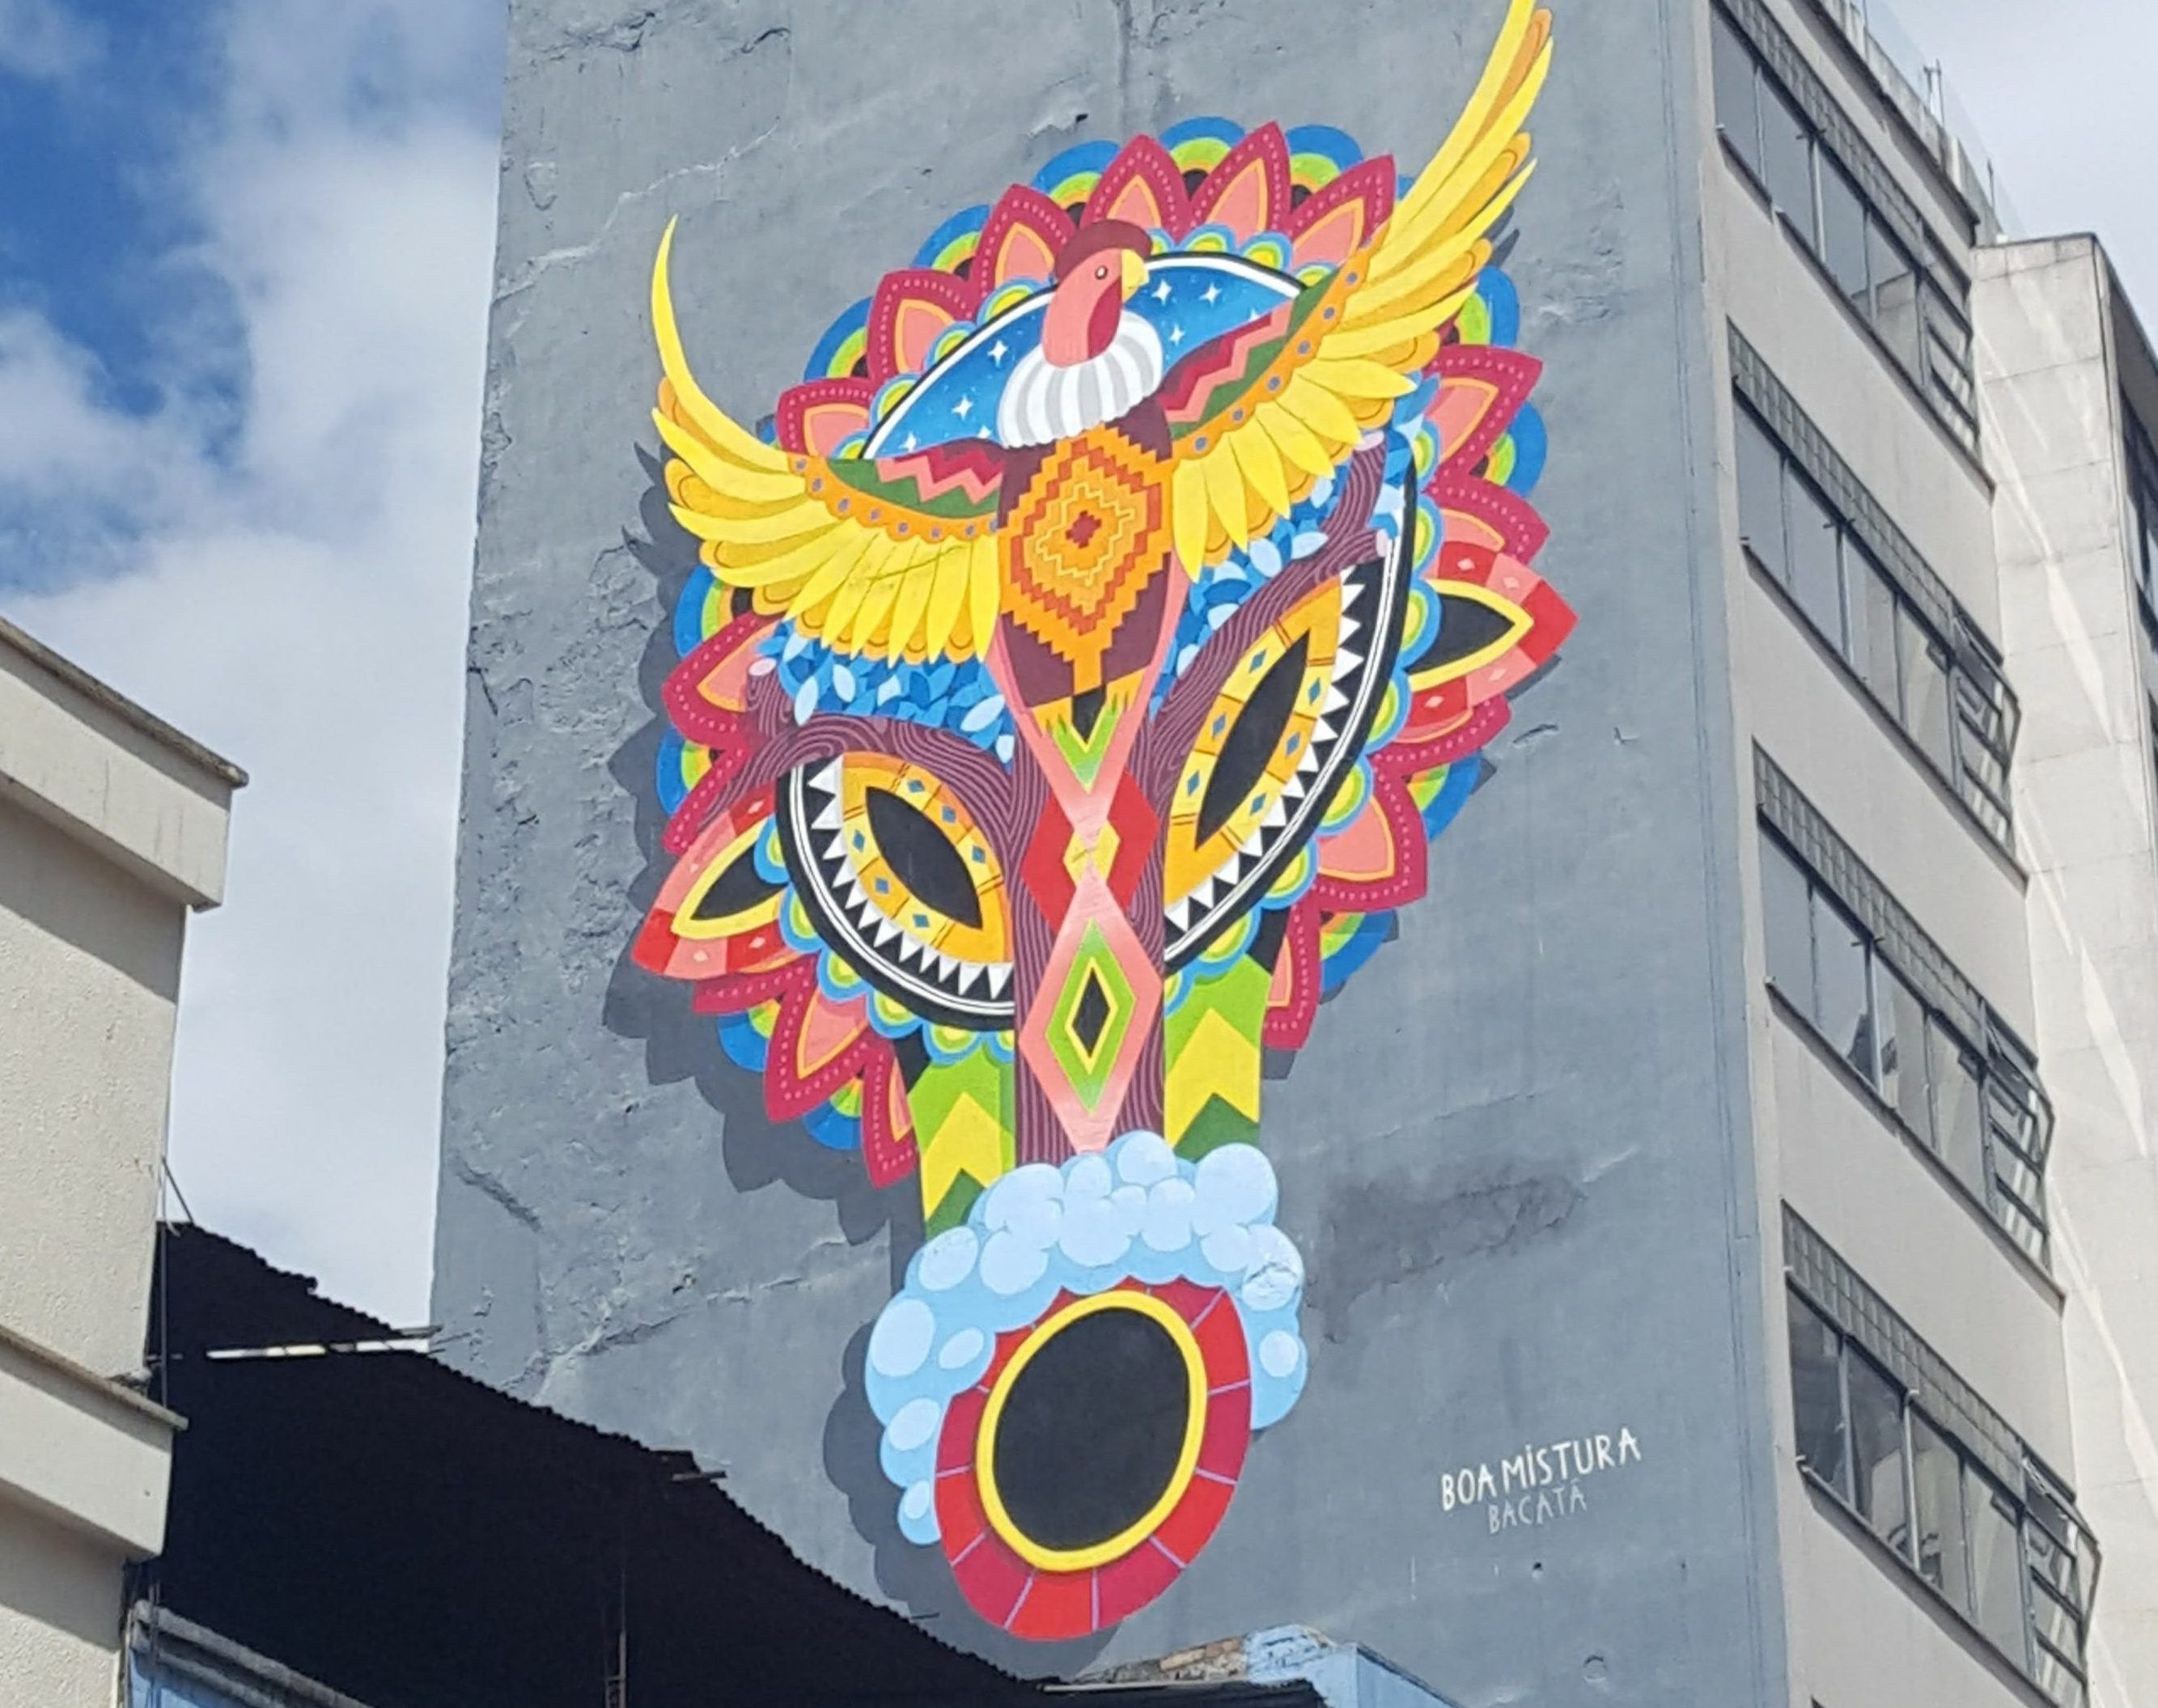 This colourful mural by Boa Mistura can be found the edge of La Candelaria, Bogota's old town. Discover the Colombian capital's amazing street art scene with the Booee app!